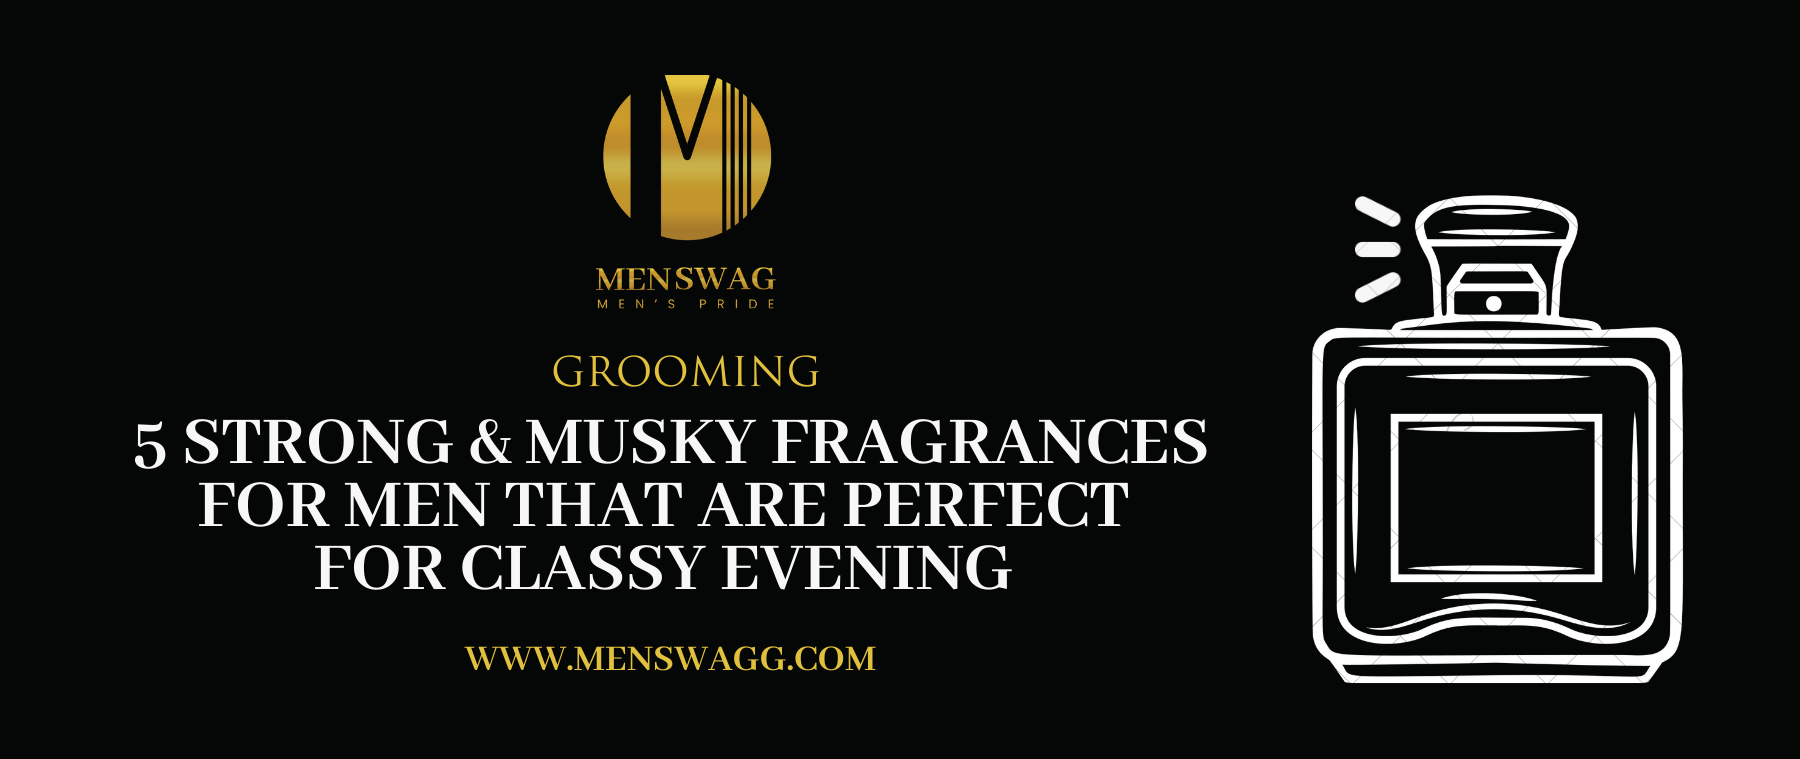 5 STRONG & MUSKY FRAGRANCES FOR MEN THAT ARE PERFECT FOR CLASSY EVENING